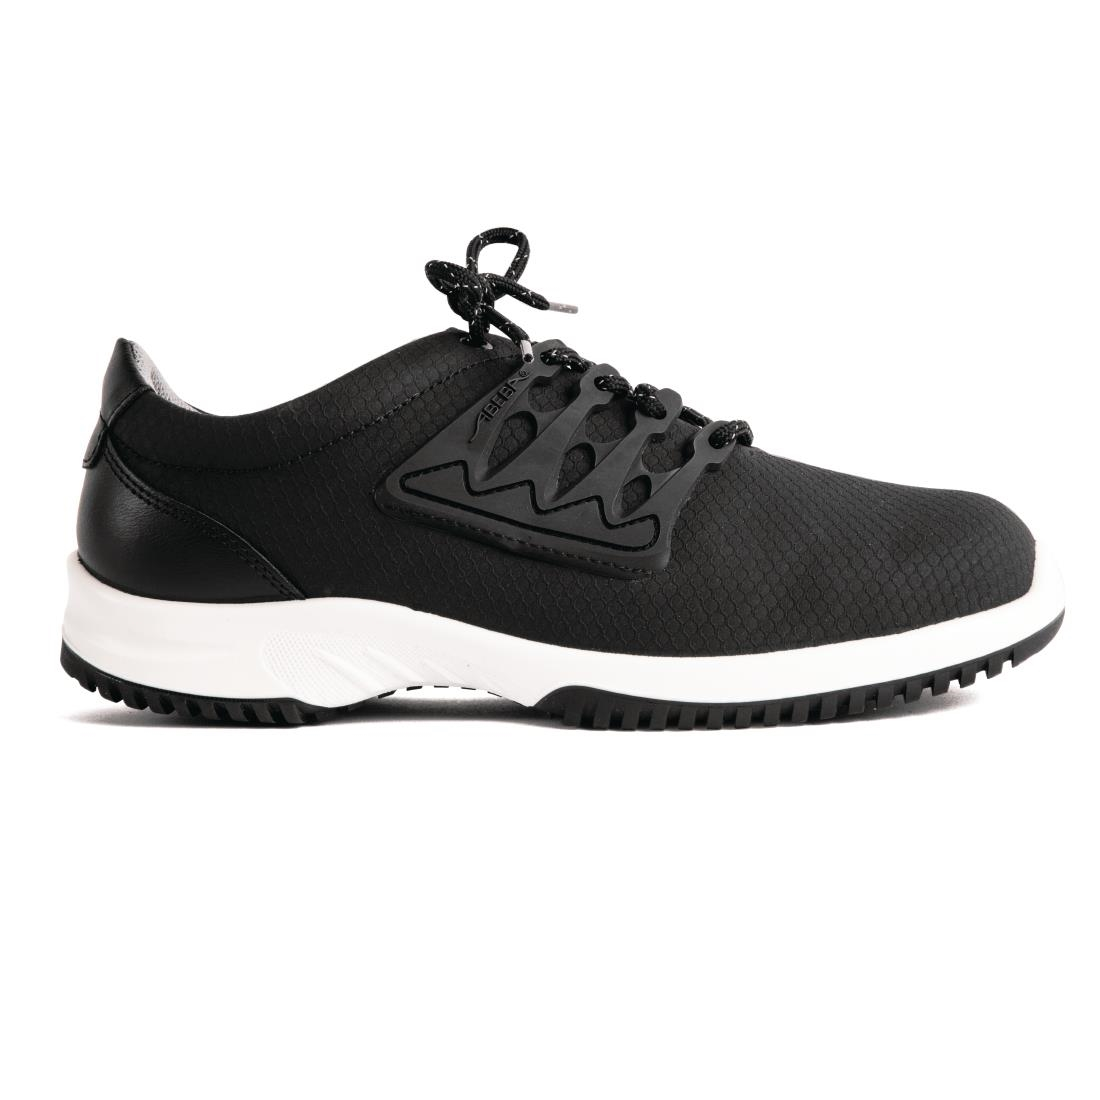 Image of Abeba Water Repellent Trainer Black Size 40